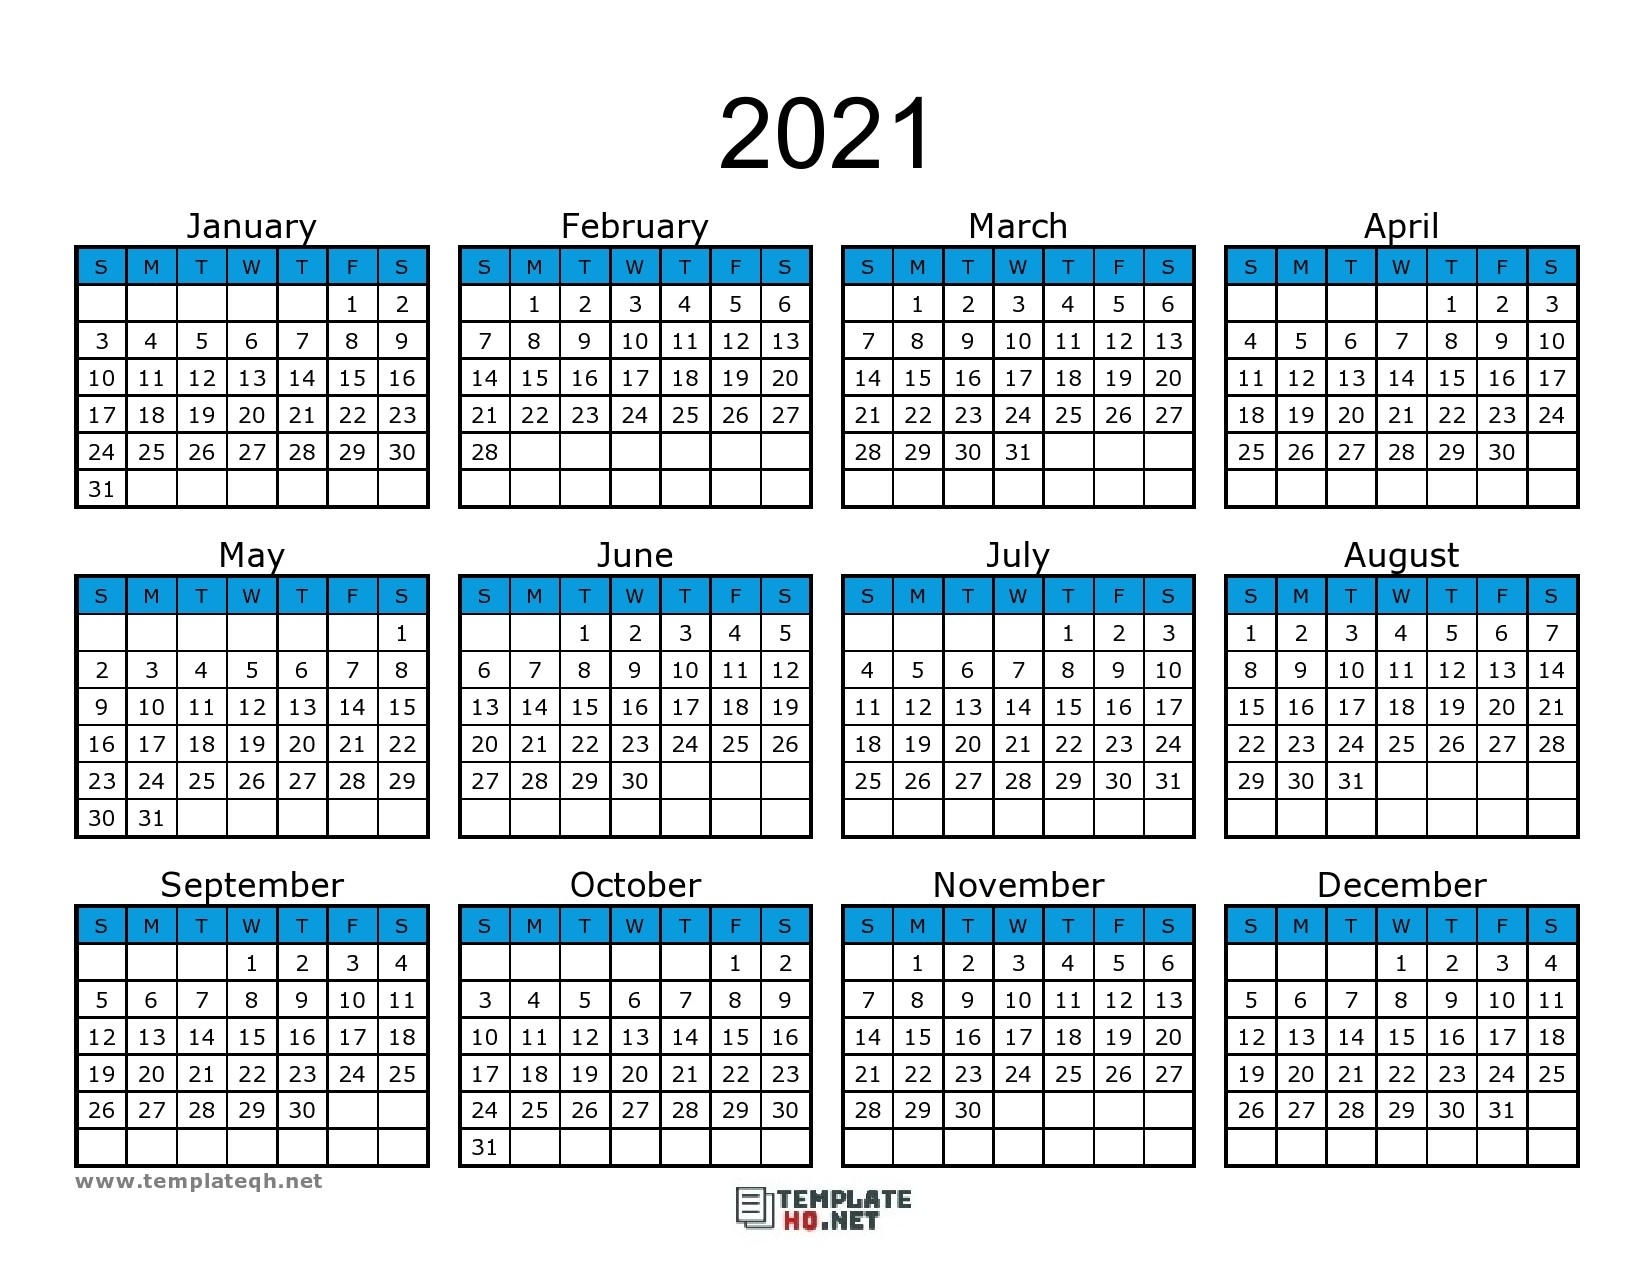 Calendar 2021 To Print Free Simple For All Users | Free within Printfree Calendar 2021 With Date Boxes